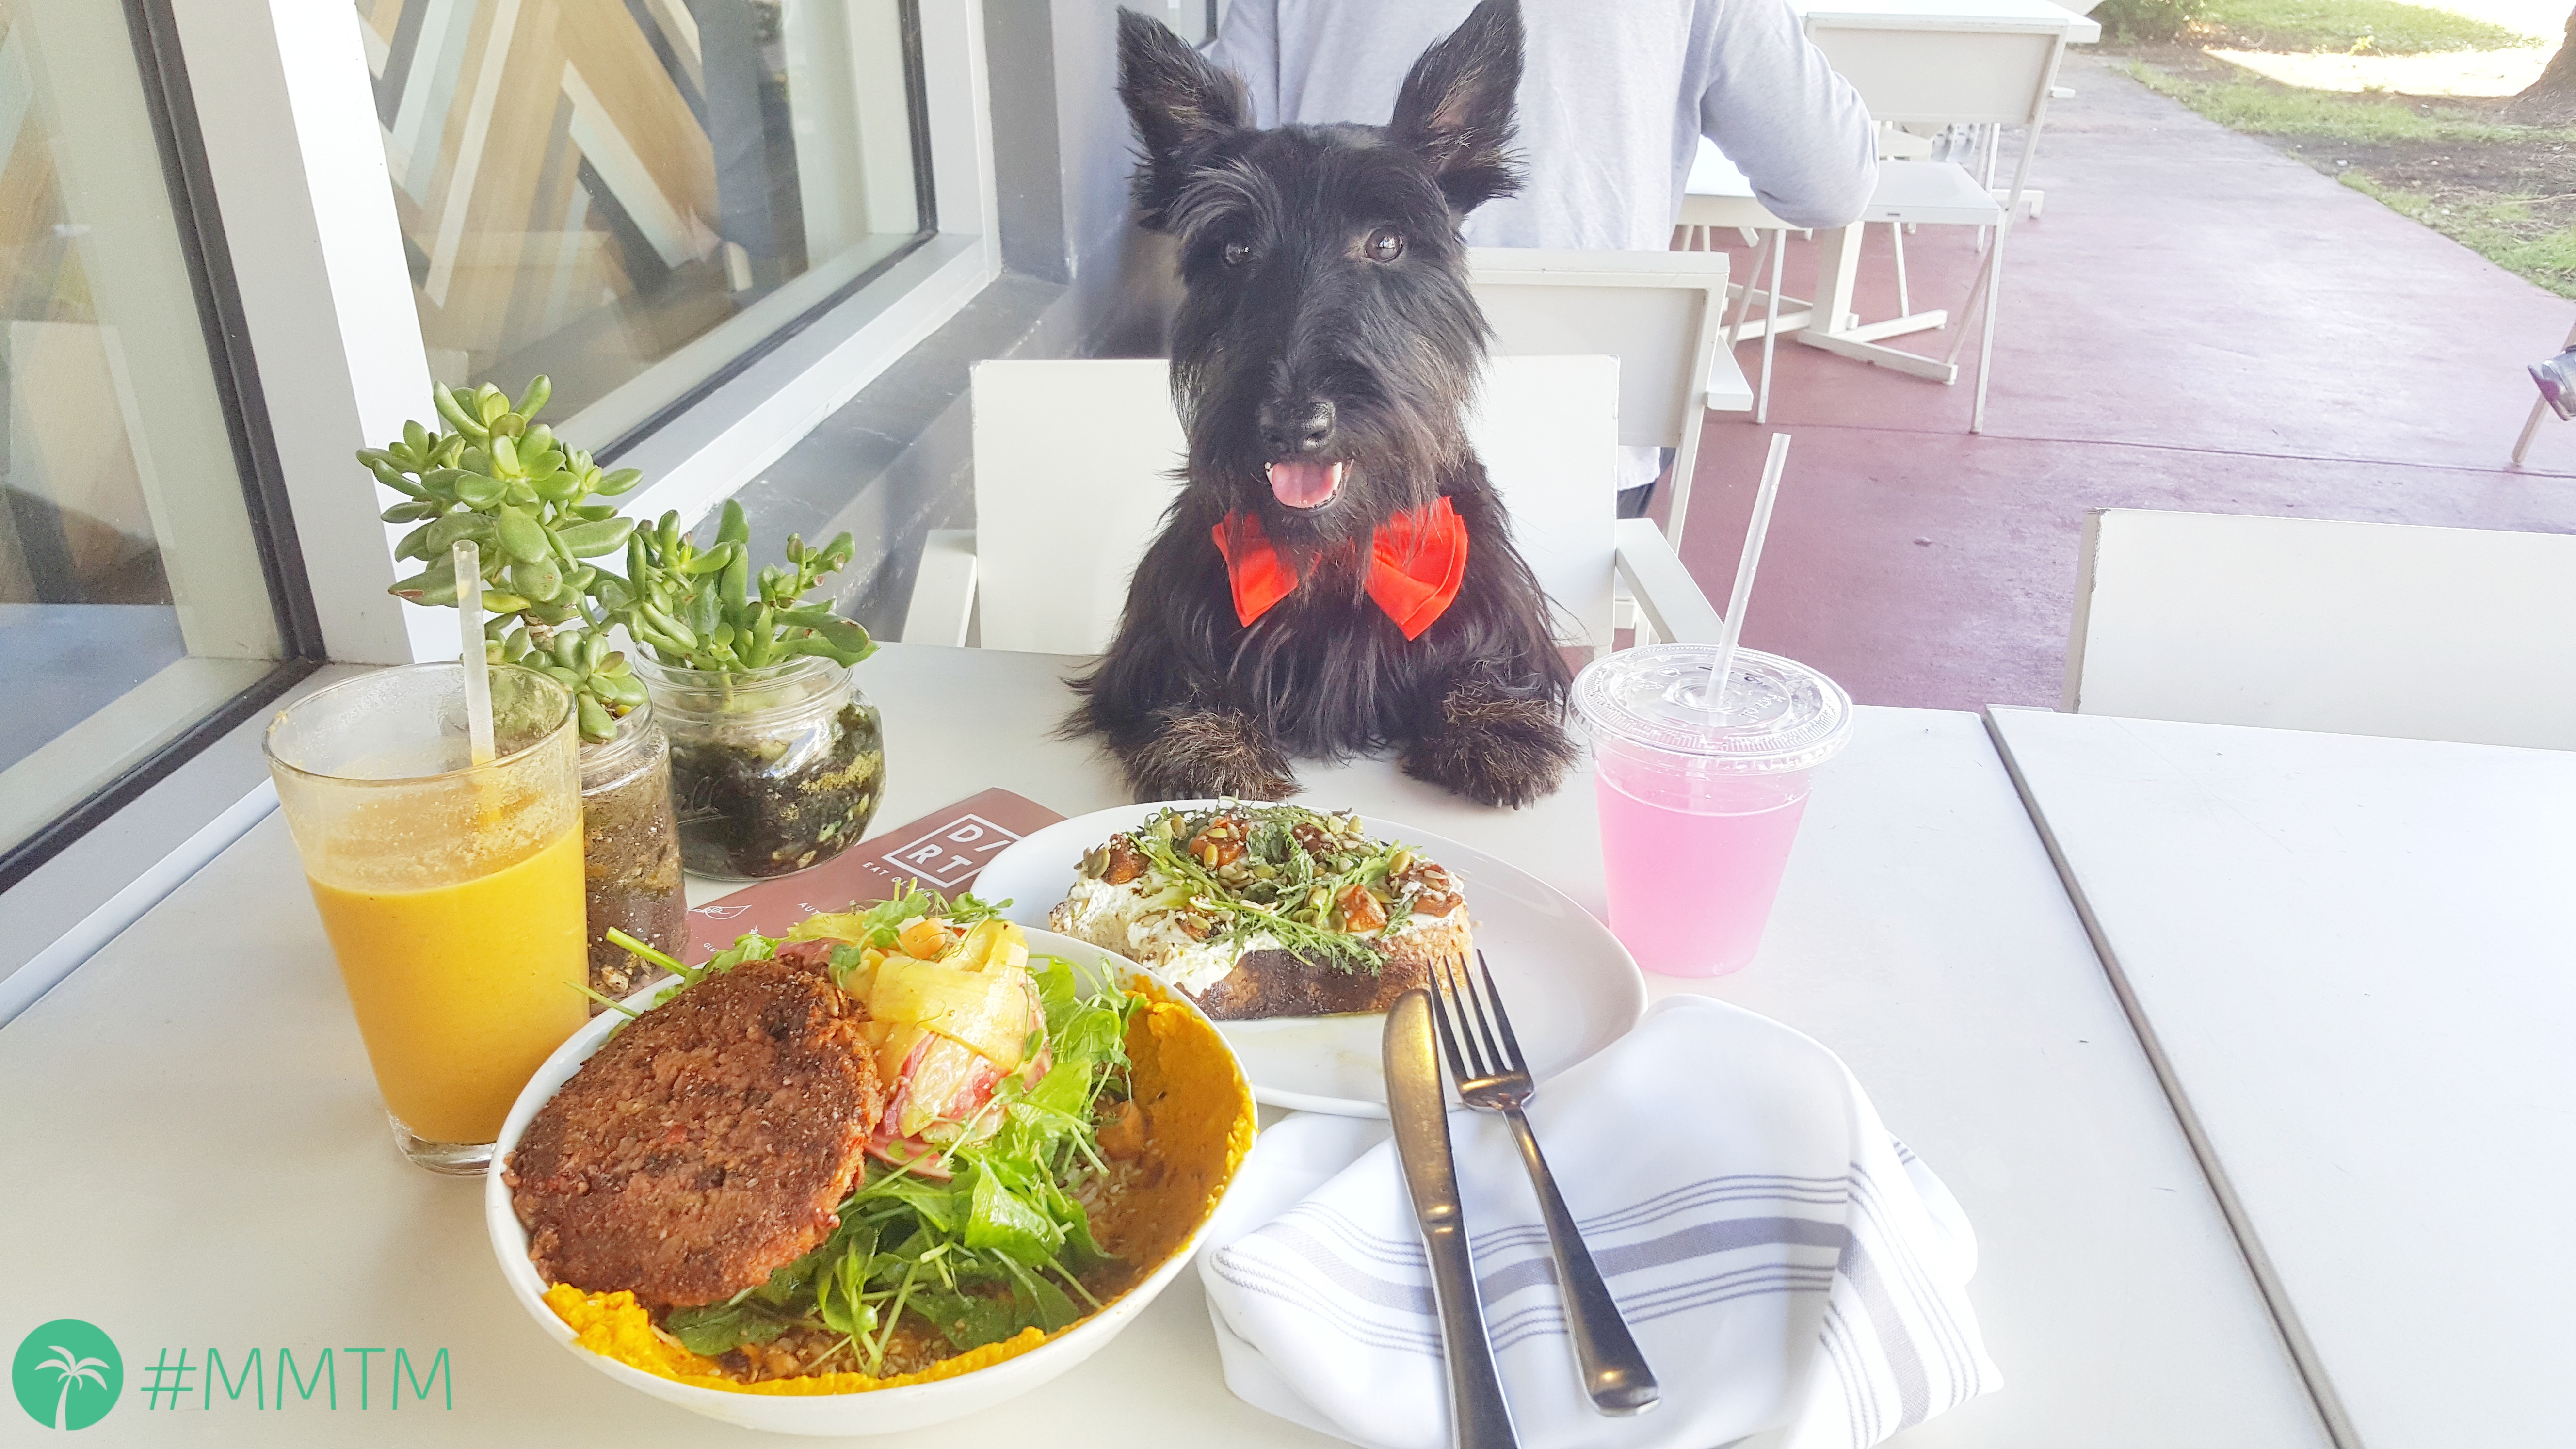 Get Your Paws Dirt Y With This New Fall Menu Mitch And Mel Take Miami